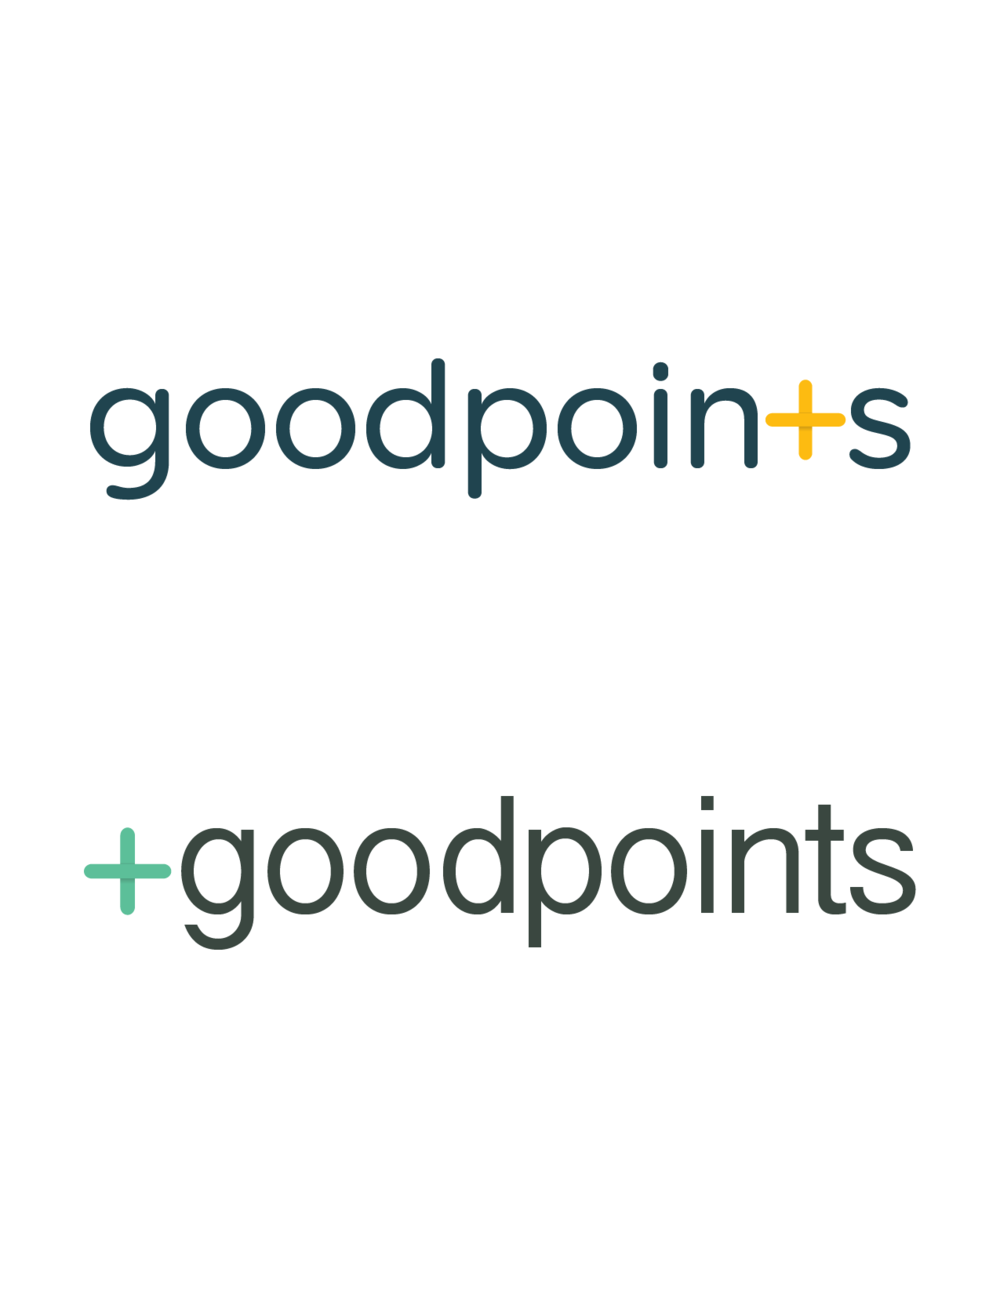 goodpoints_branding_06012016-01_favortites.png